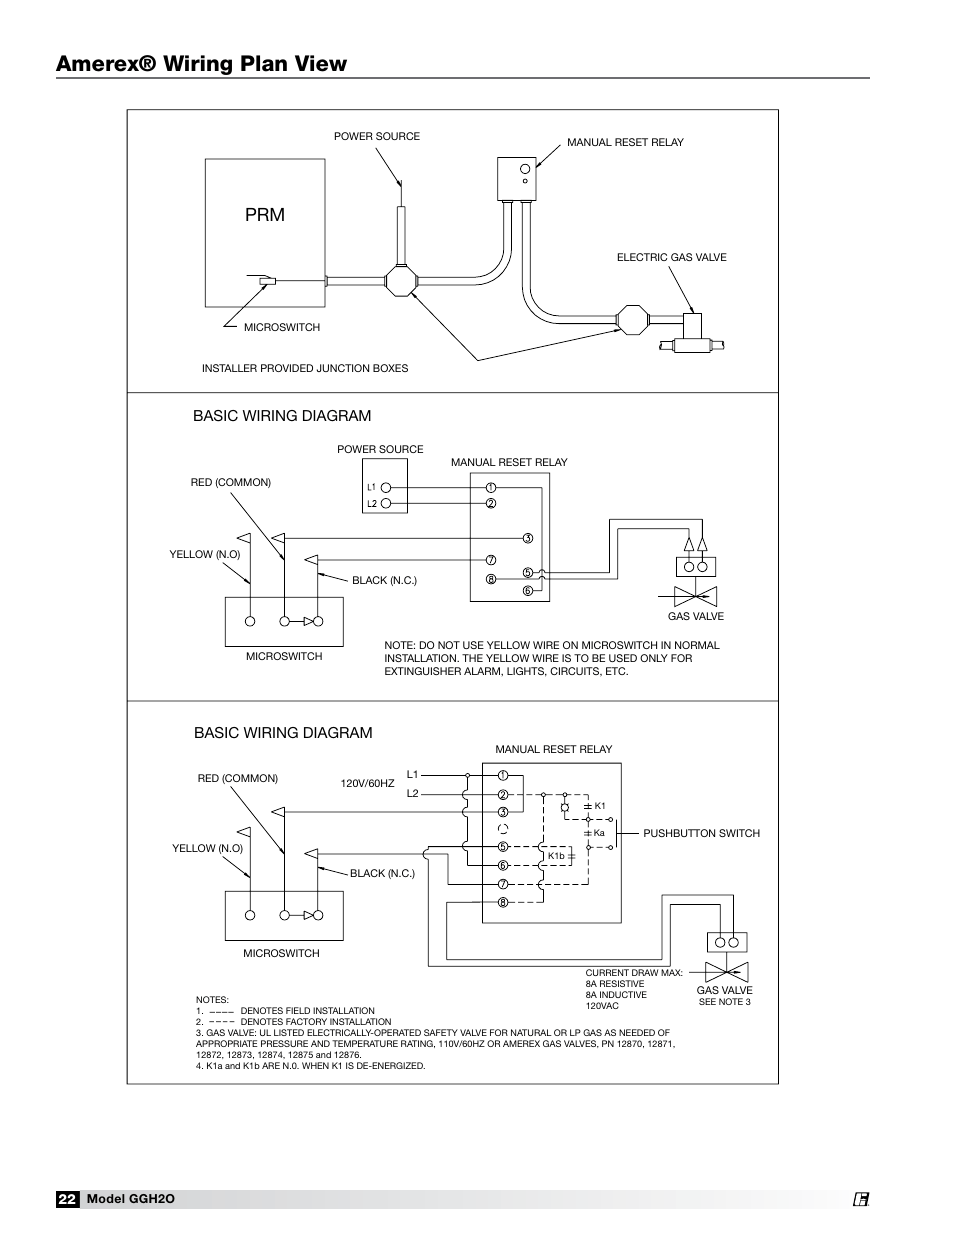 hight resolution of amerex wiring plan view basic wiring diagram greenheck fan grease grabber h2o auto cleaning hood ggh20 user manual page 22 28